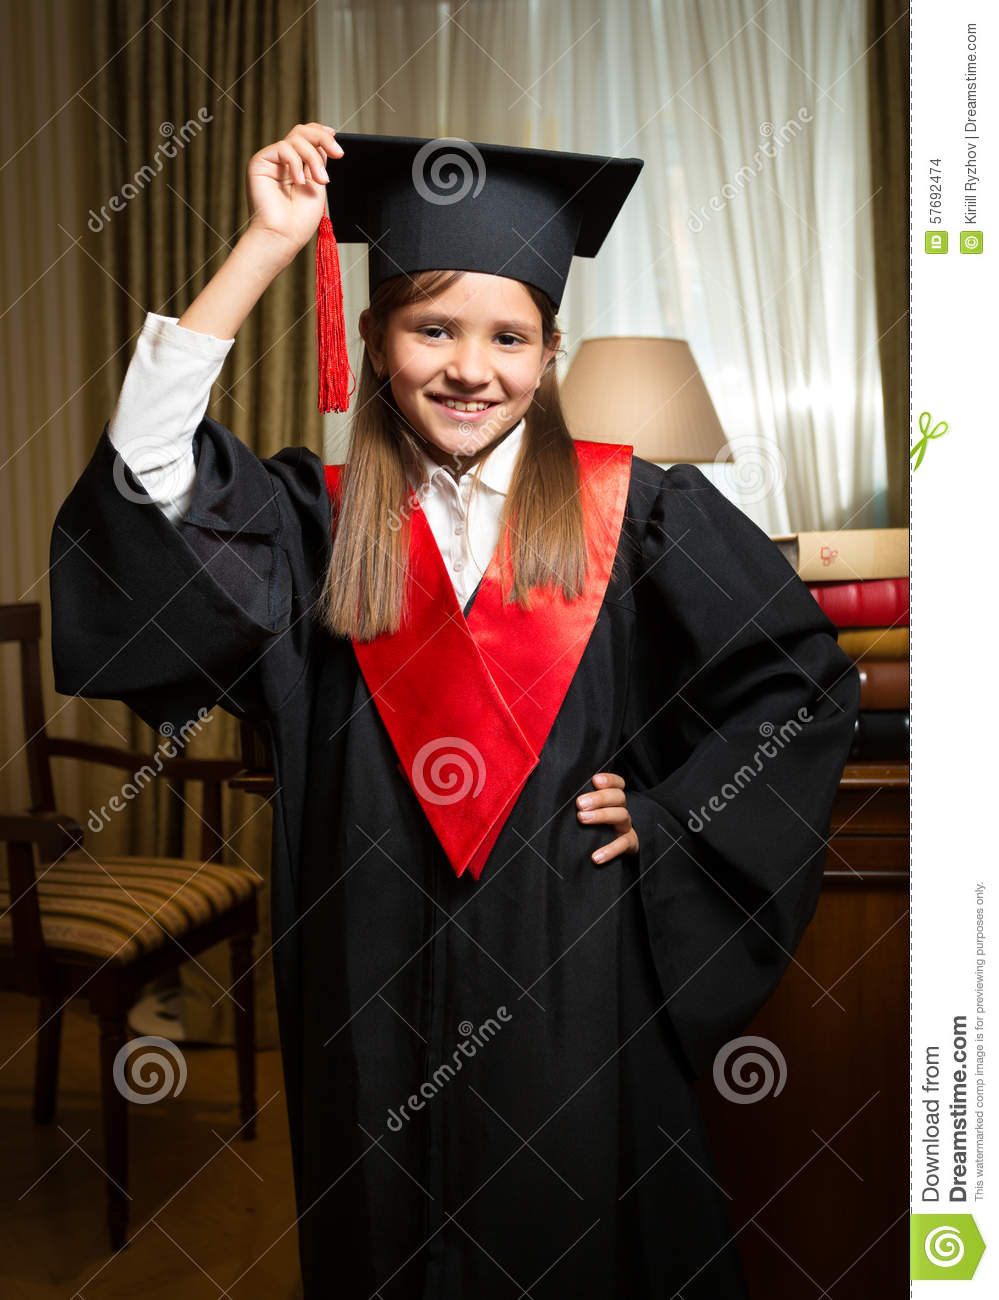 Girl In Graduation Cap And Gown Posing At Classic Interior Stock ...